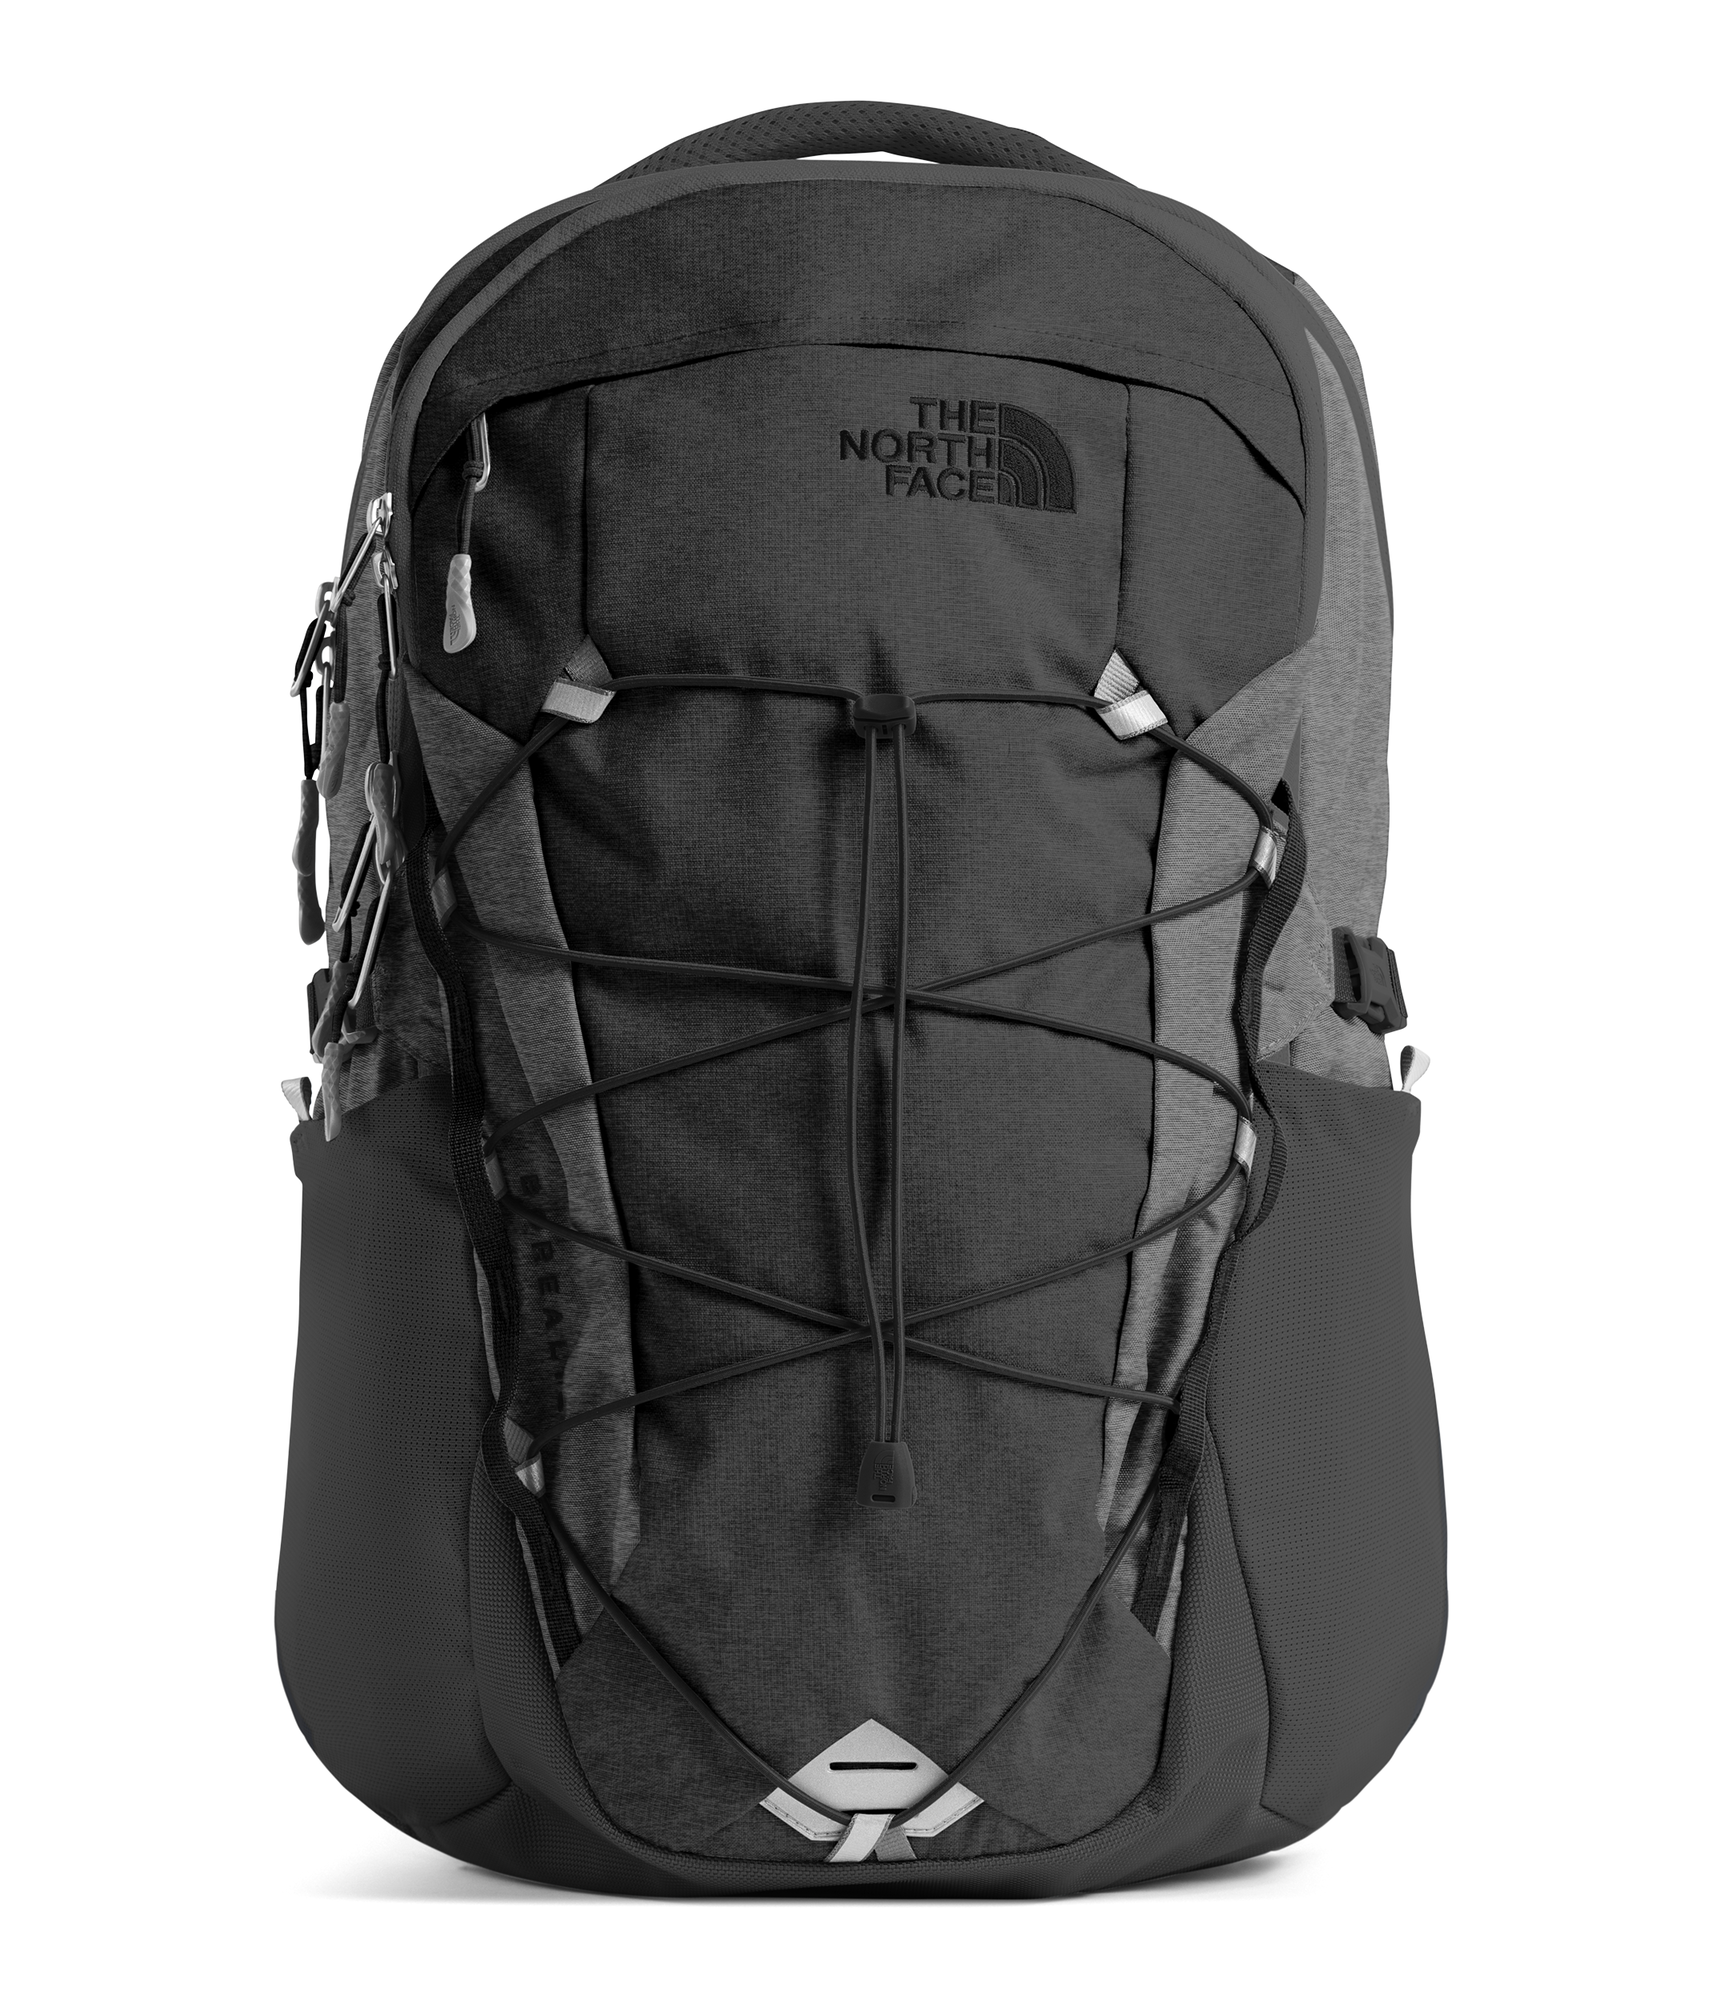 genuine select for clearance huge discount The North Face Borealis Backpack - Dark Grey Heather/Medium Grey